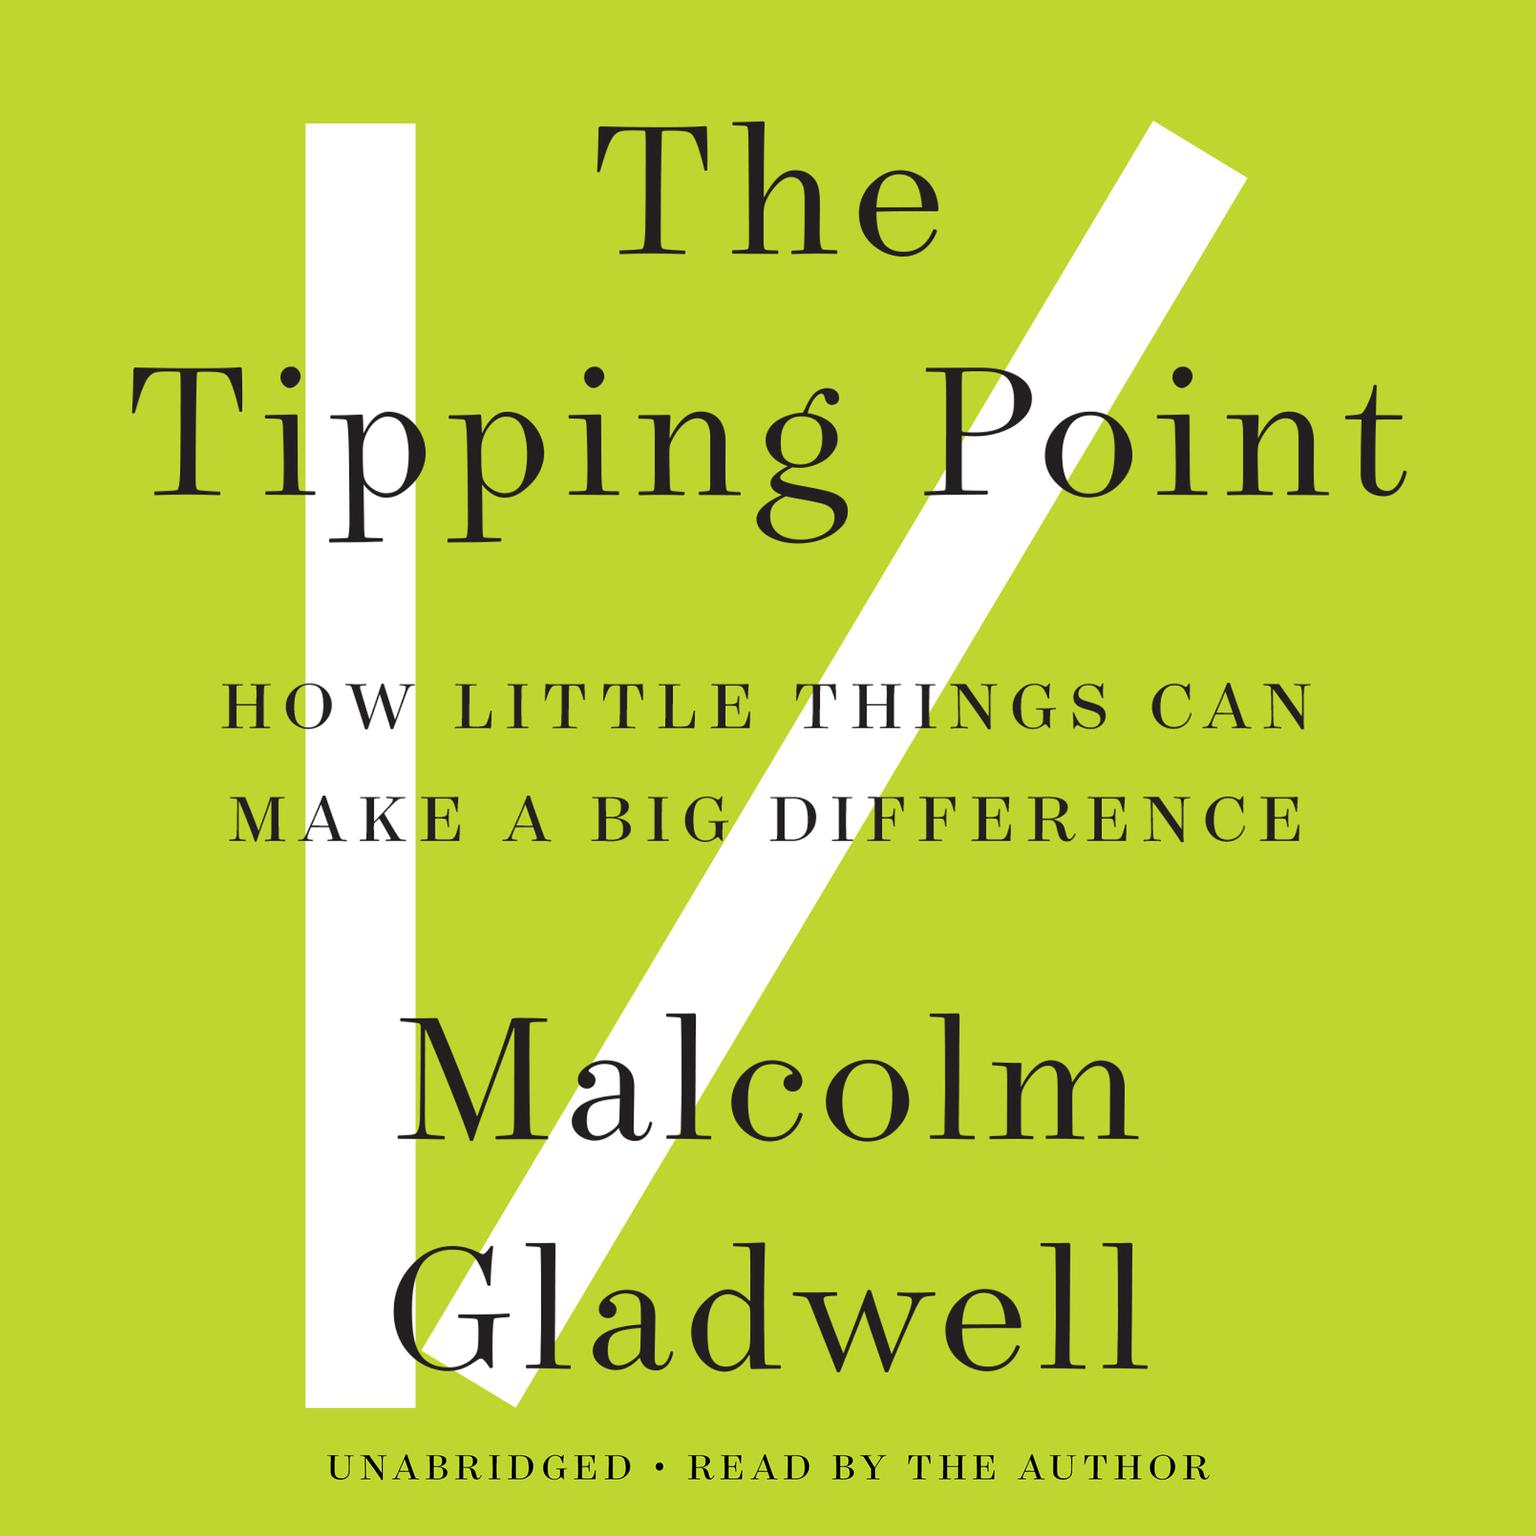 hear the tipping point audiobook by malcolm gladwell by extended audio sample the tipping point how little things can make a big difference audiobook by malcolm